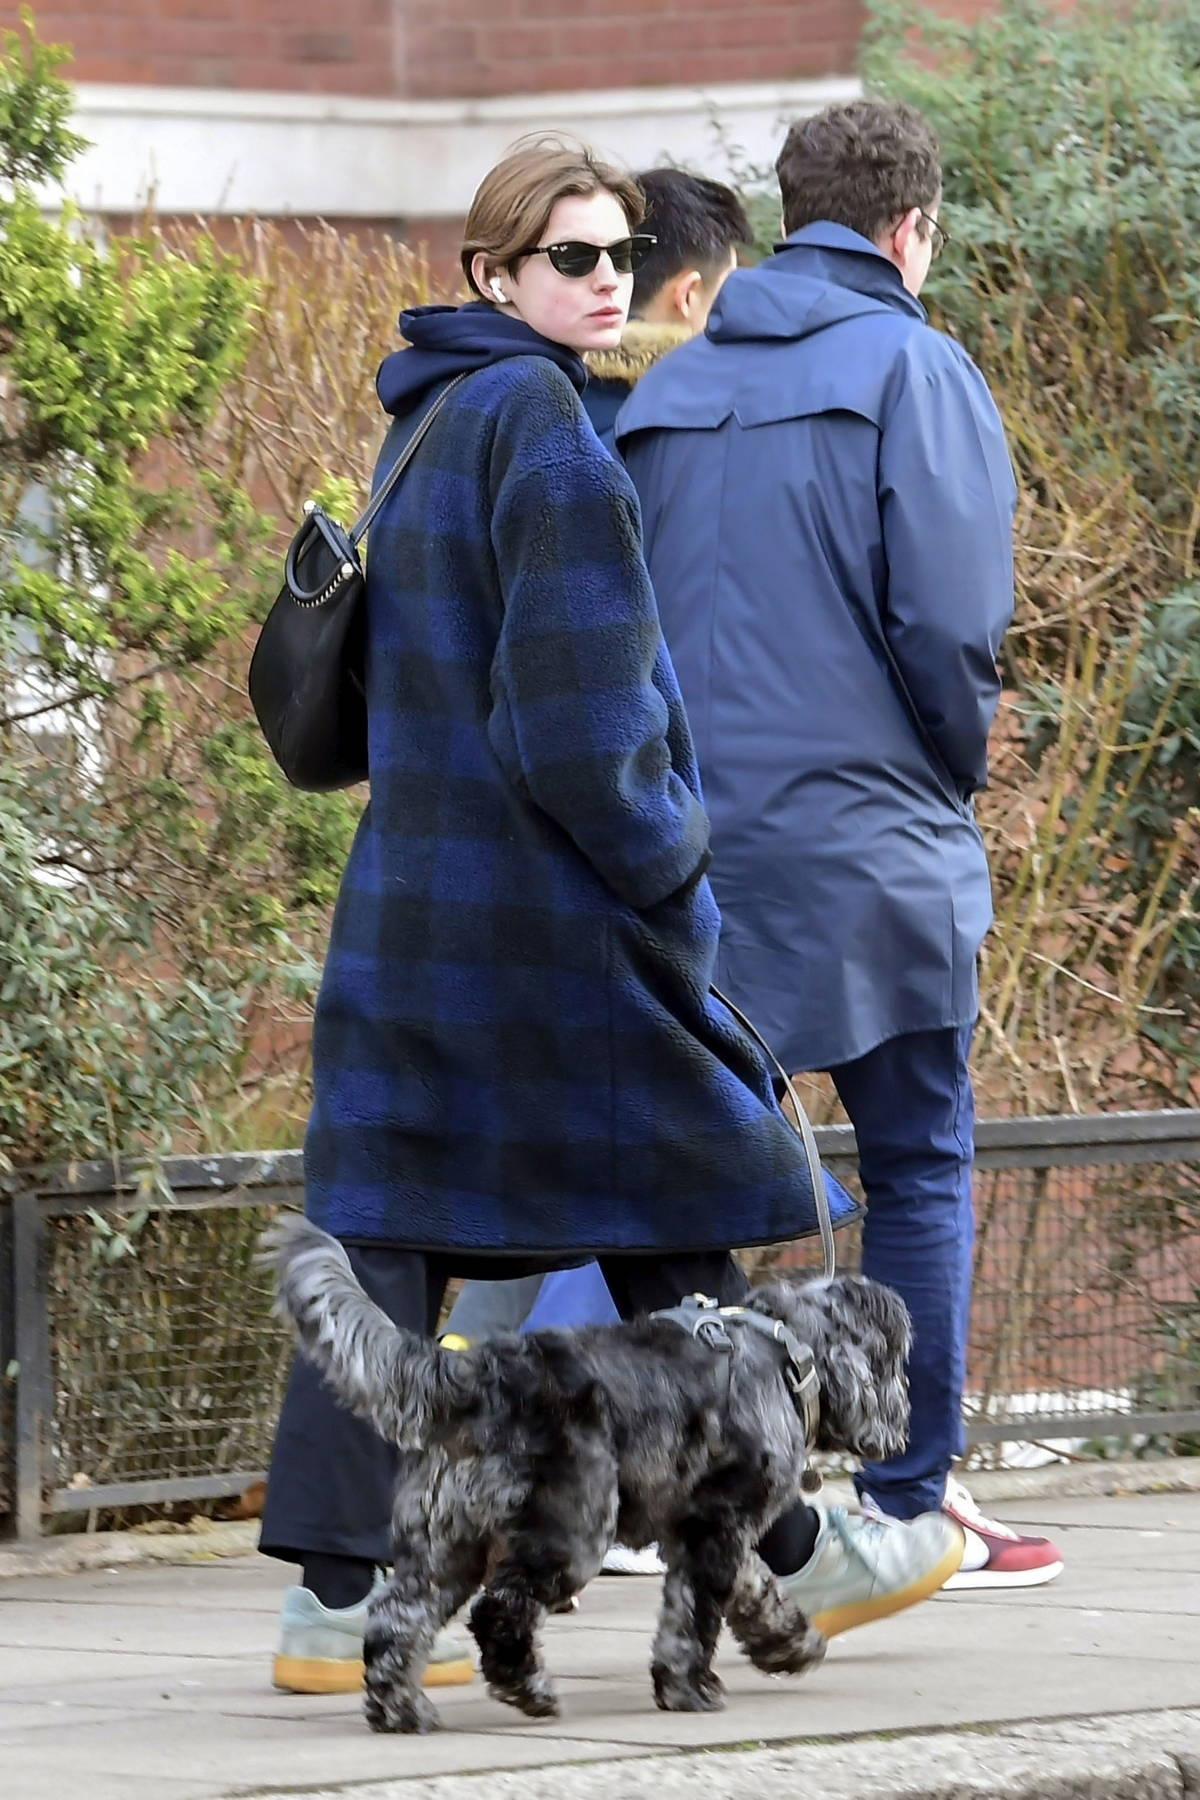 Emma Corrin shows off her laid back casual style while out walking her dog in North London, UK